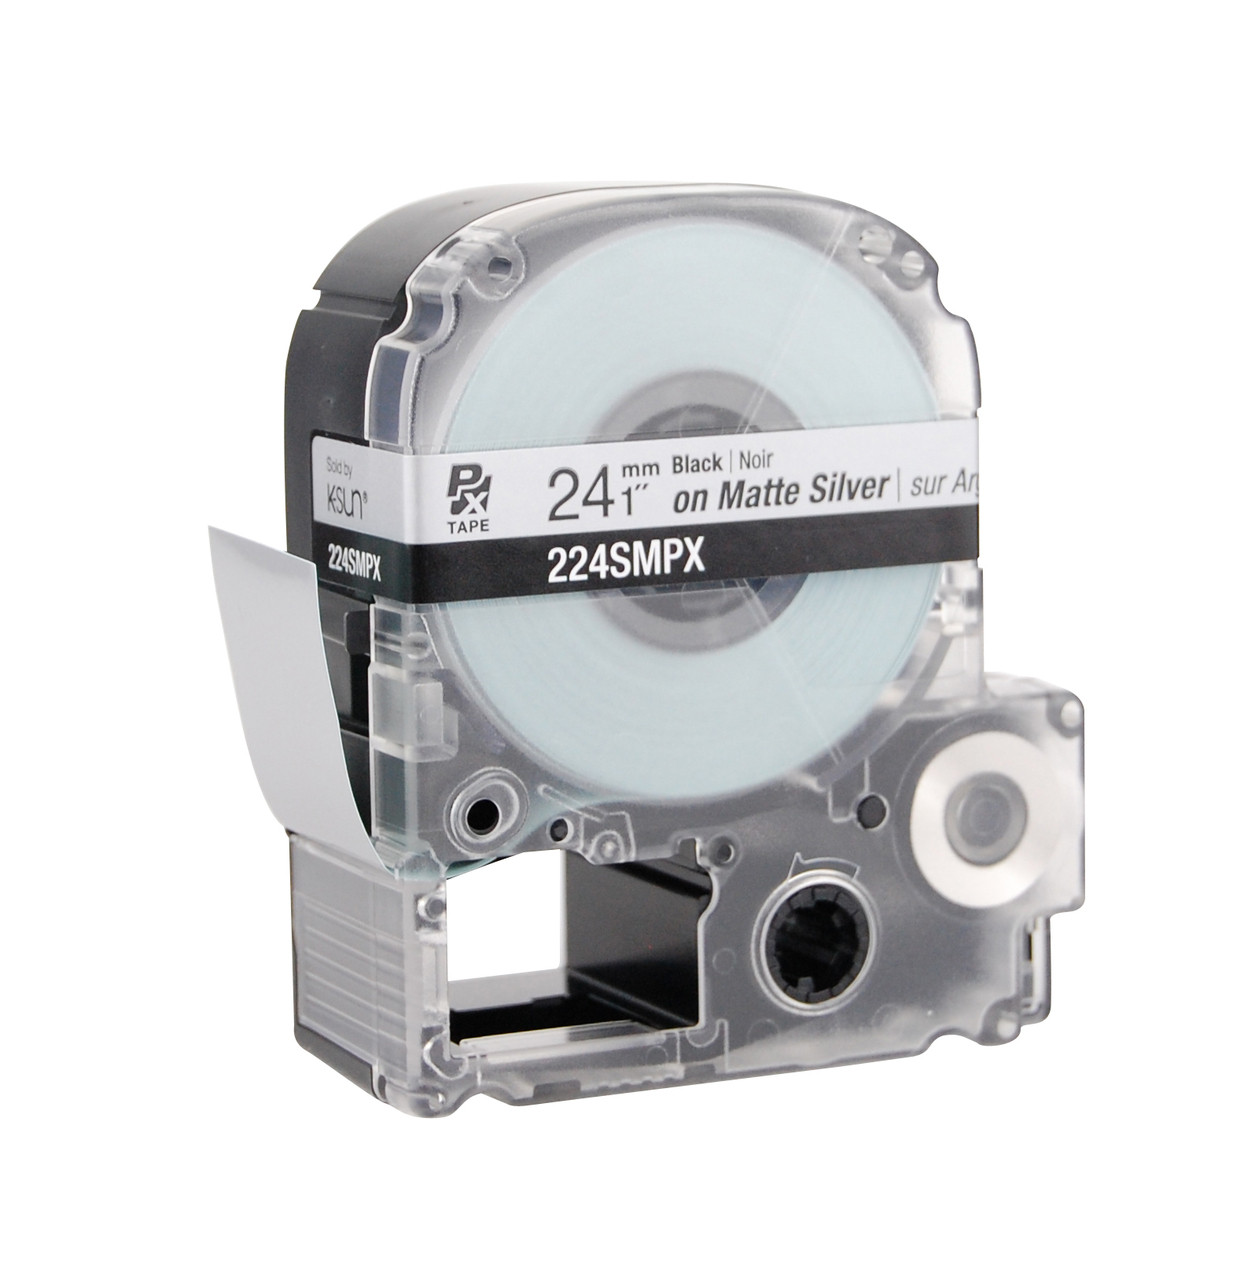 """Epson 224SMPX 1"""" Silver Matte Polyester Label PX Tape"""